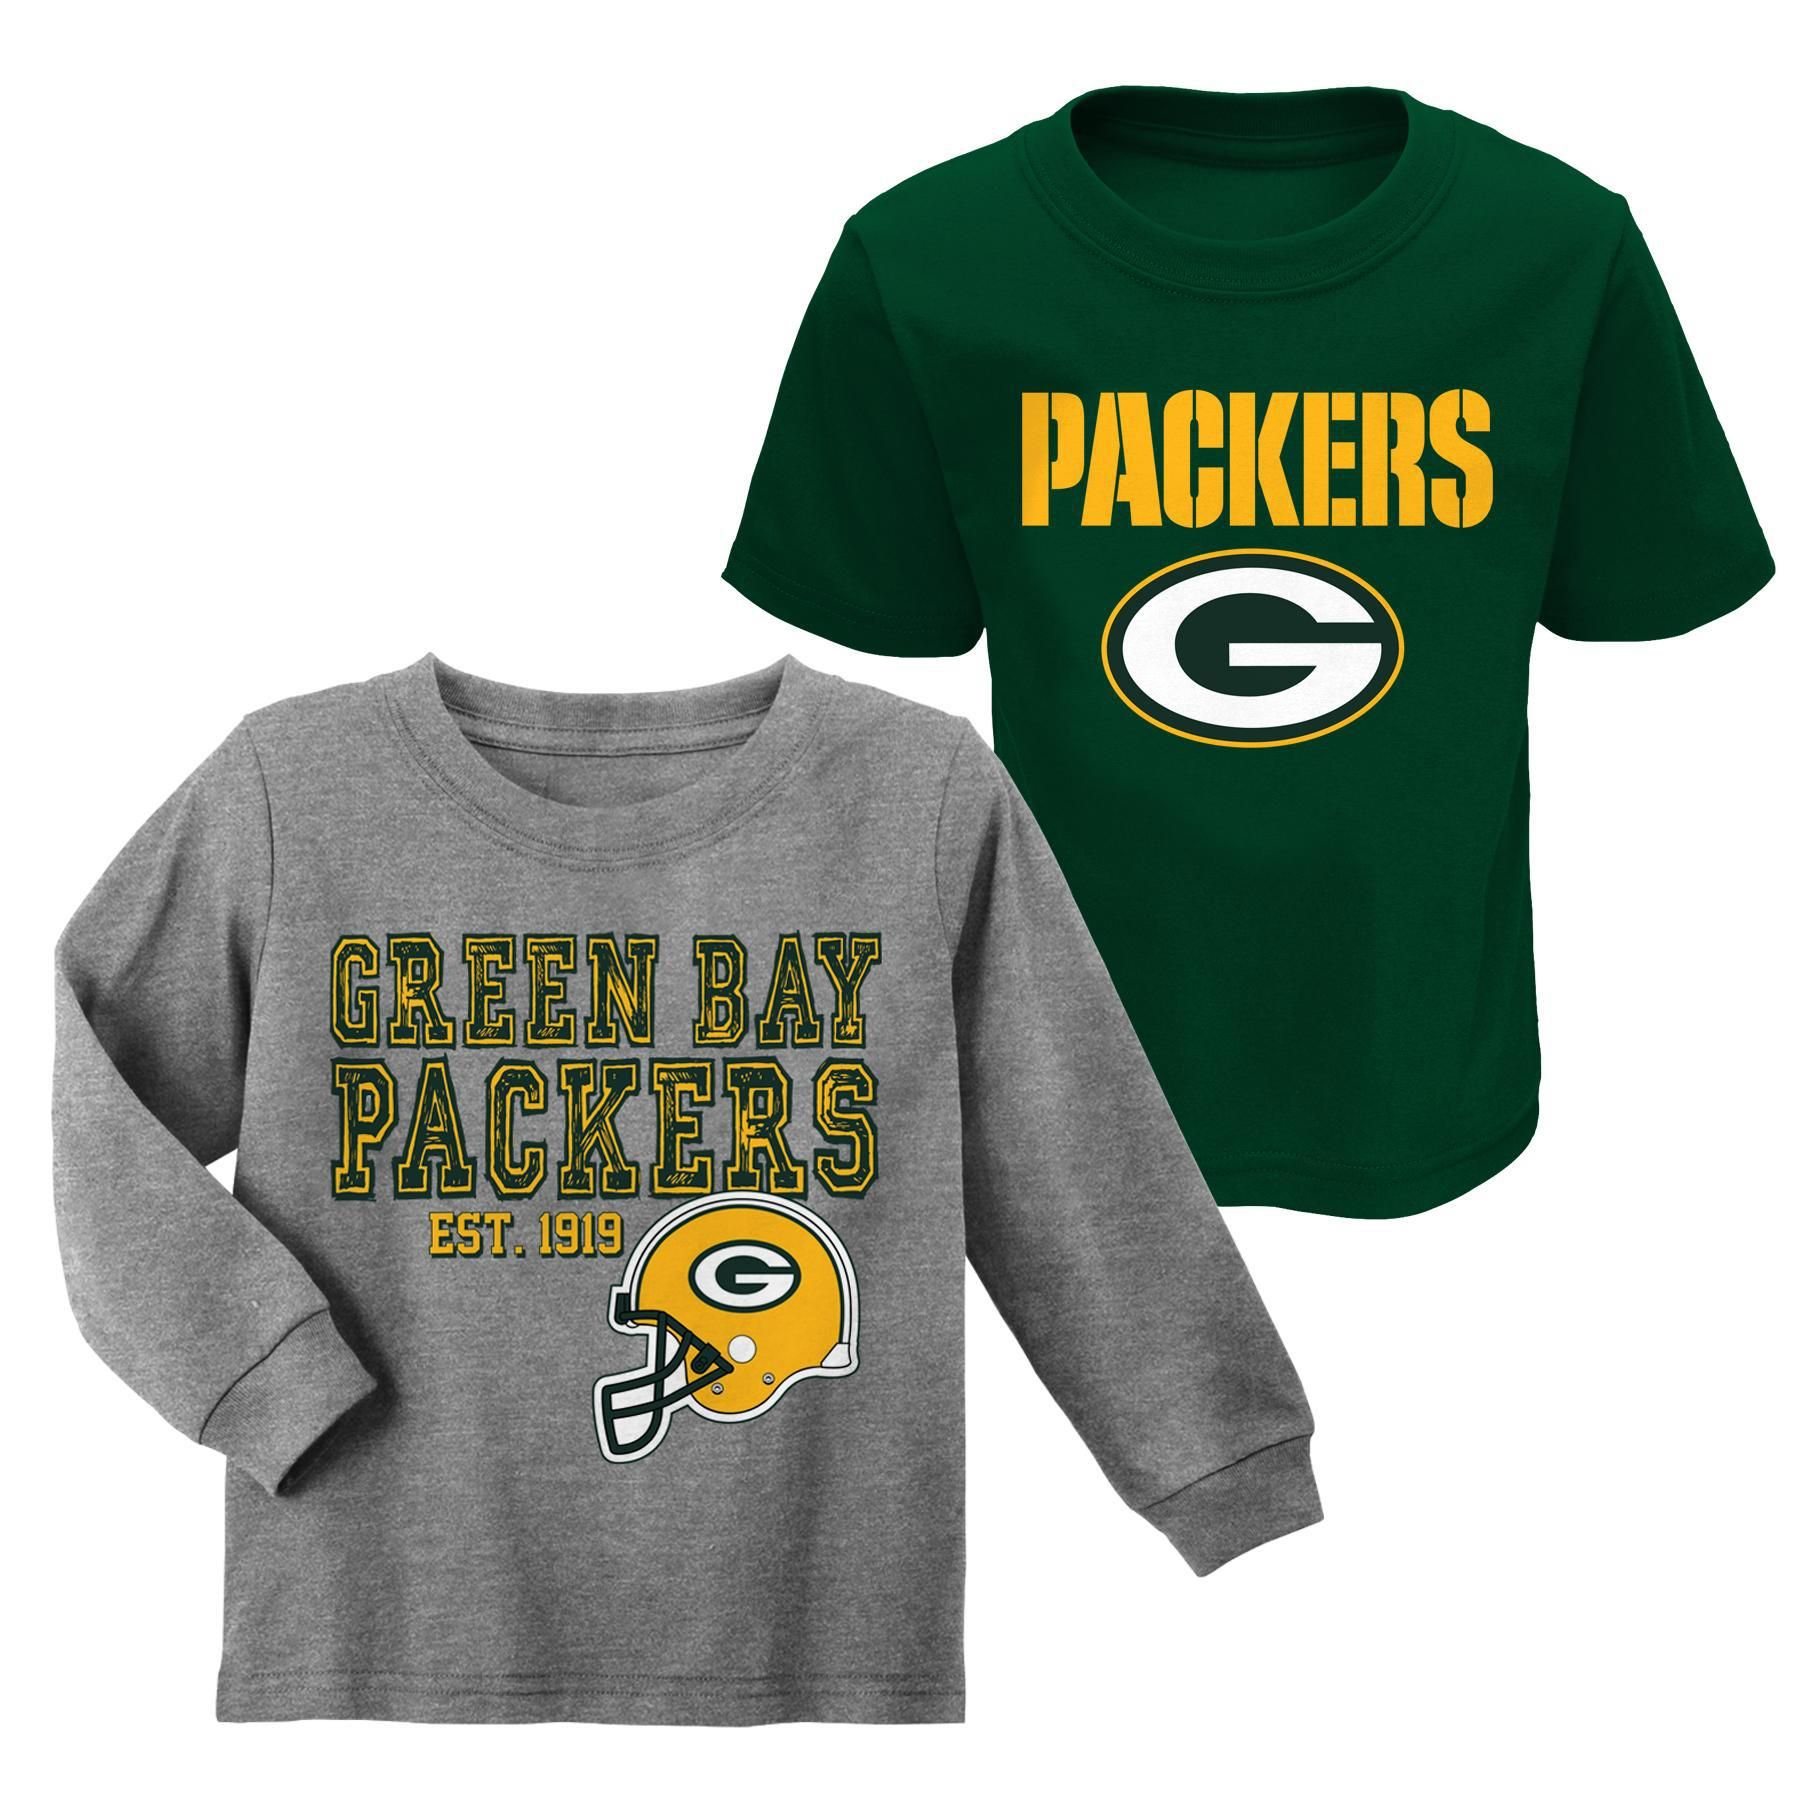 new product 15ab1 ce6e5 NFL Toddler Boys' 2-Pack T-Shirts - Green Bay Packers ...